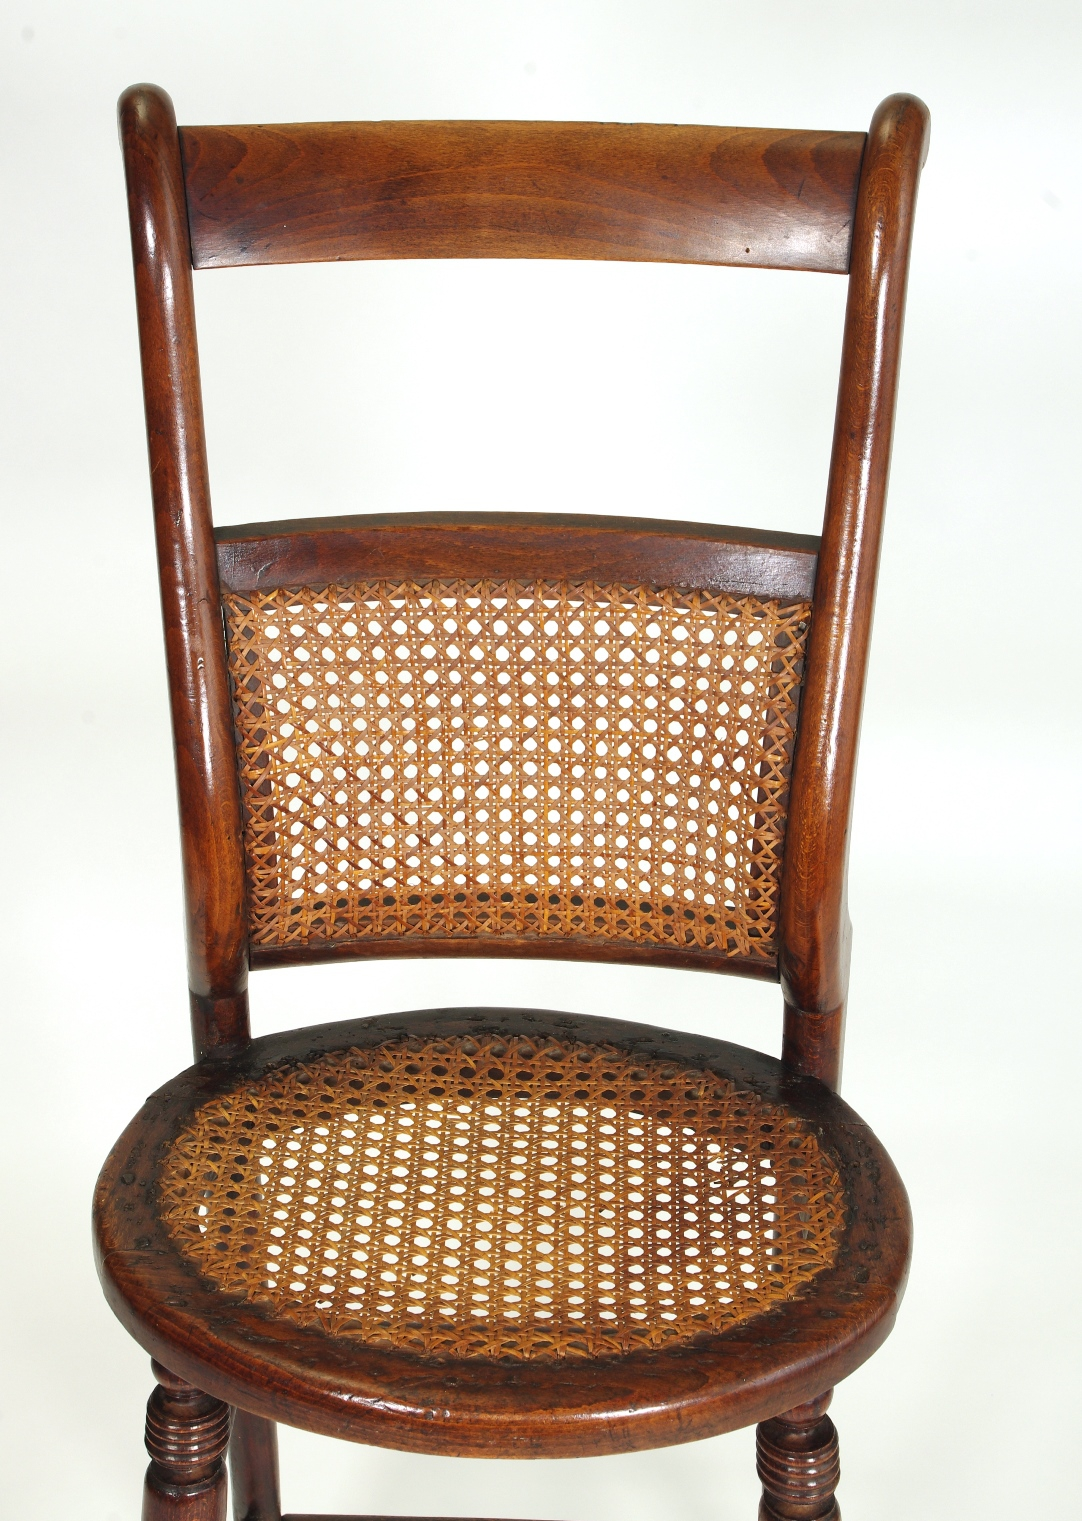 View 6: Regency Child's Correction Chair, c. 1830